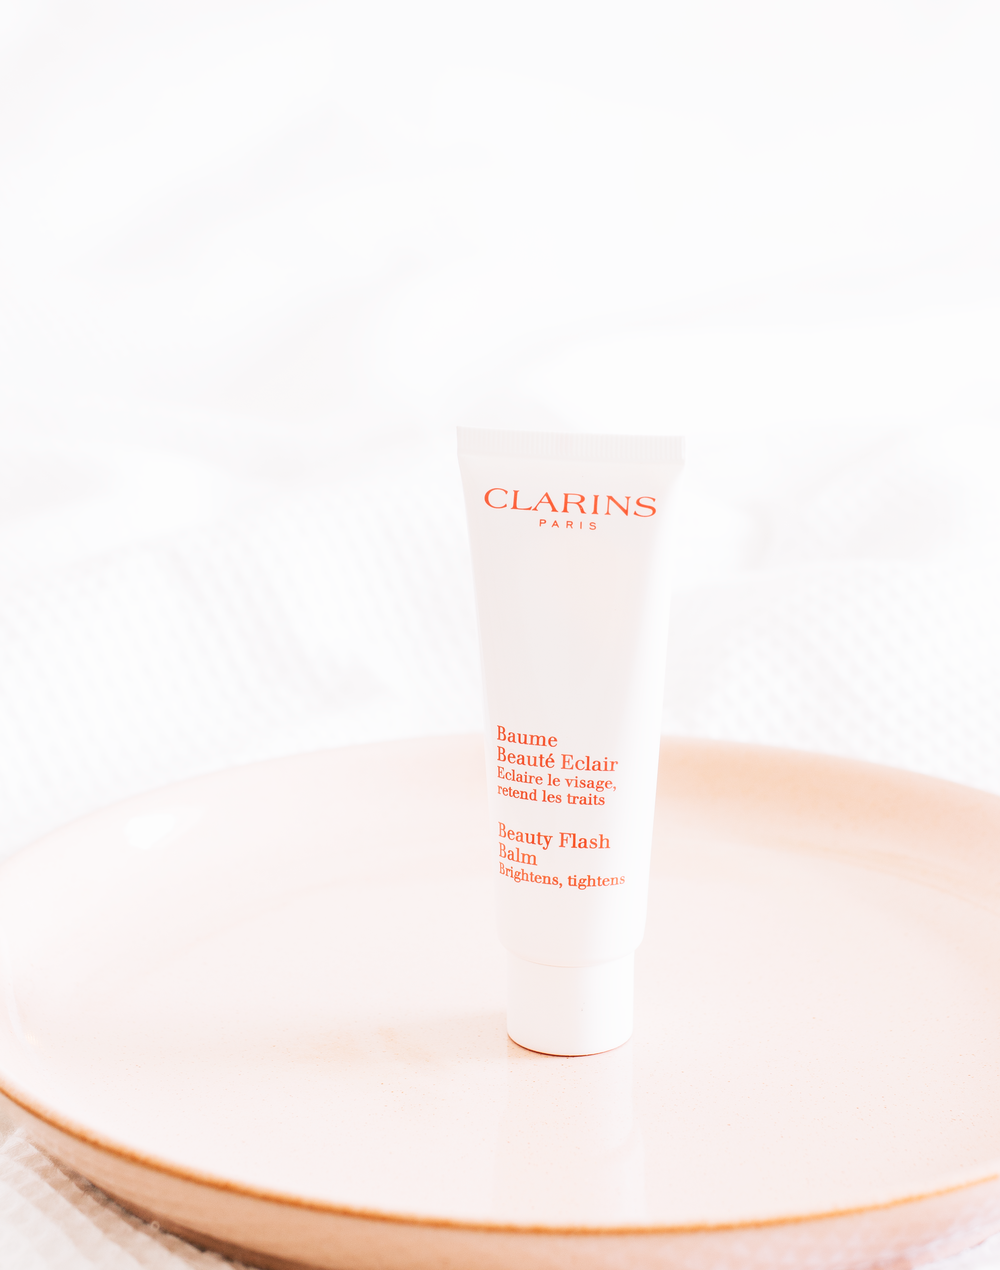 clarins beauty flash balm* - I'm currently using up this primer before it goes off and it's been the perfect climate for it. The weather is changing all the time at the moment, one day it's absolutely disgustingly hot and then it's a chilly eleven degrees. The beauty flash balm is a very, very well loved product amongst beauty fanatics and if it works for you then it is great but I can easily see why it wouldn't work on many skin tones. It's almost like a moisturiser but not quite and you simply smooth [do not rub] onto your skin and it instantly brightens it up and tightens it too. It feels comforting and moisturising but it's not something I find gives a crazy dewy finish either. It's not something I think I'll ever purchase again as there are better primers out there for me but I do really like the results that it gives.